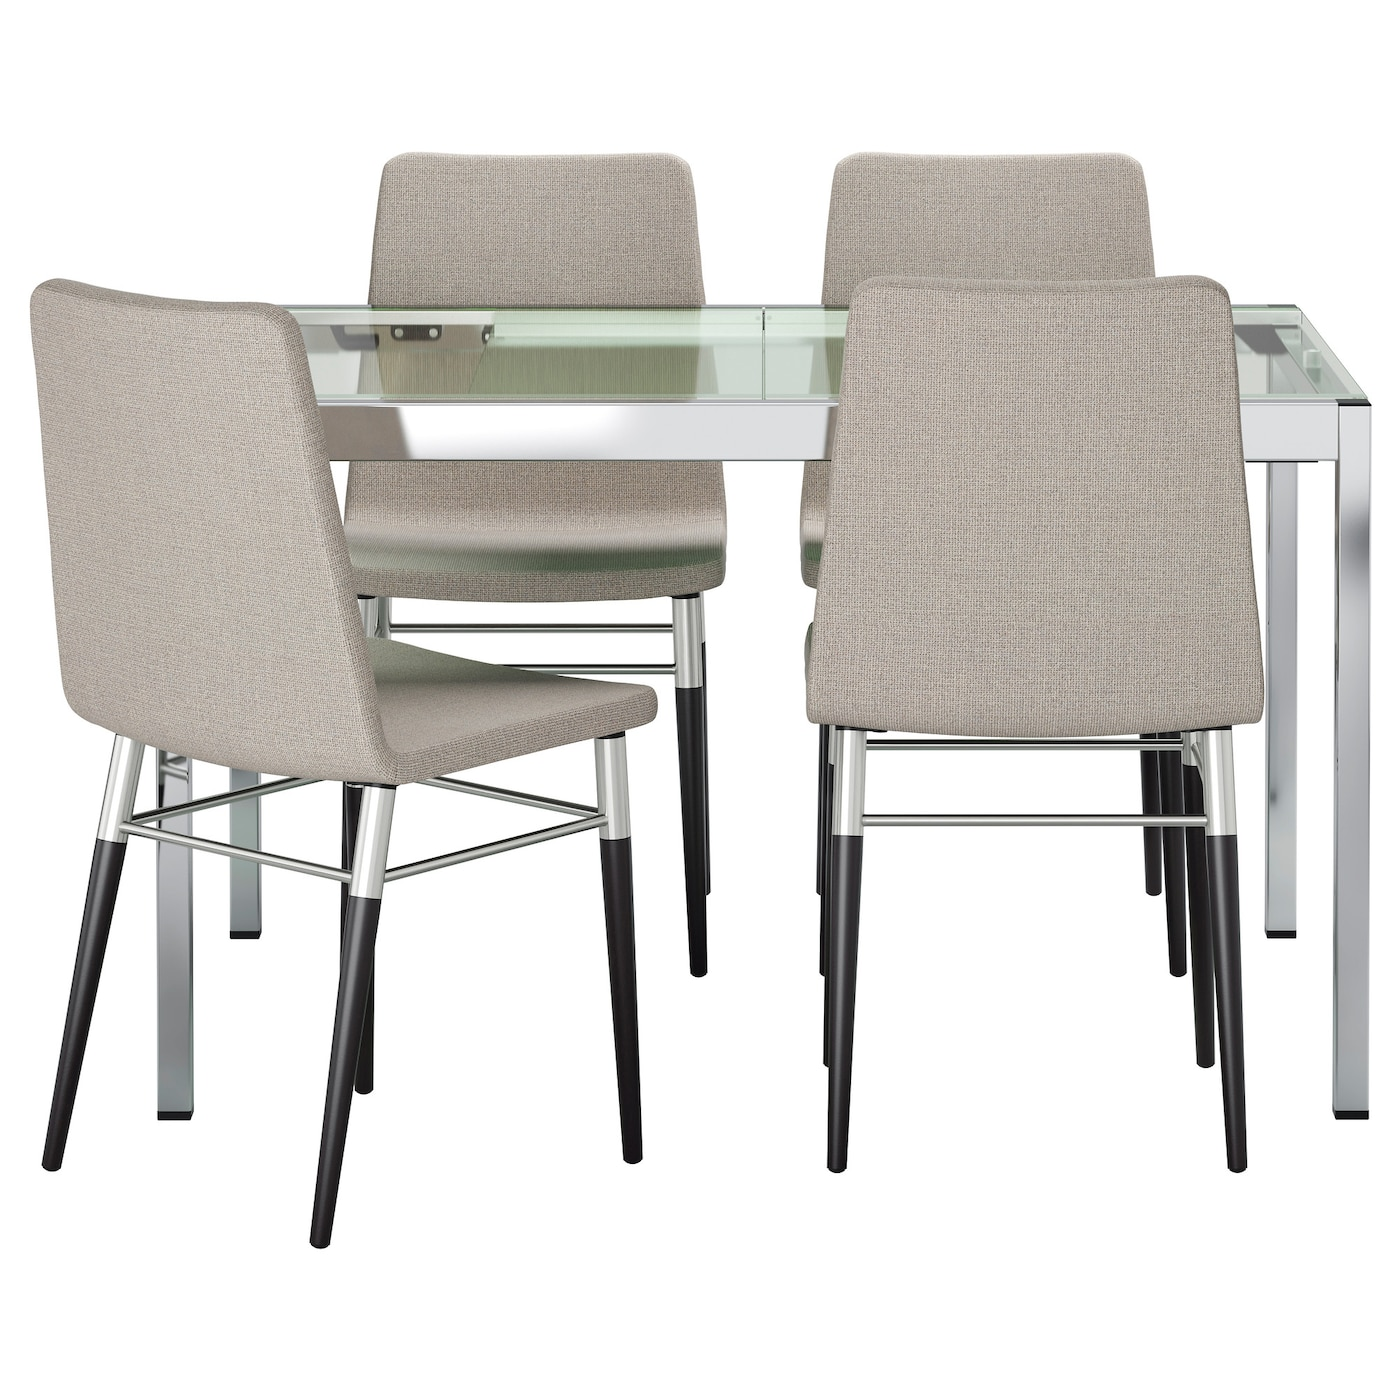 IKEA PREBEN GLIVARP Table And 4 Chairs You Sit Comfortably Thanks To The Padded Seat